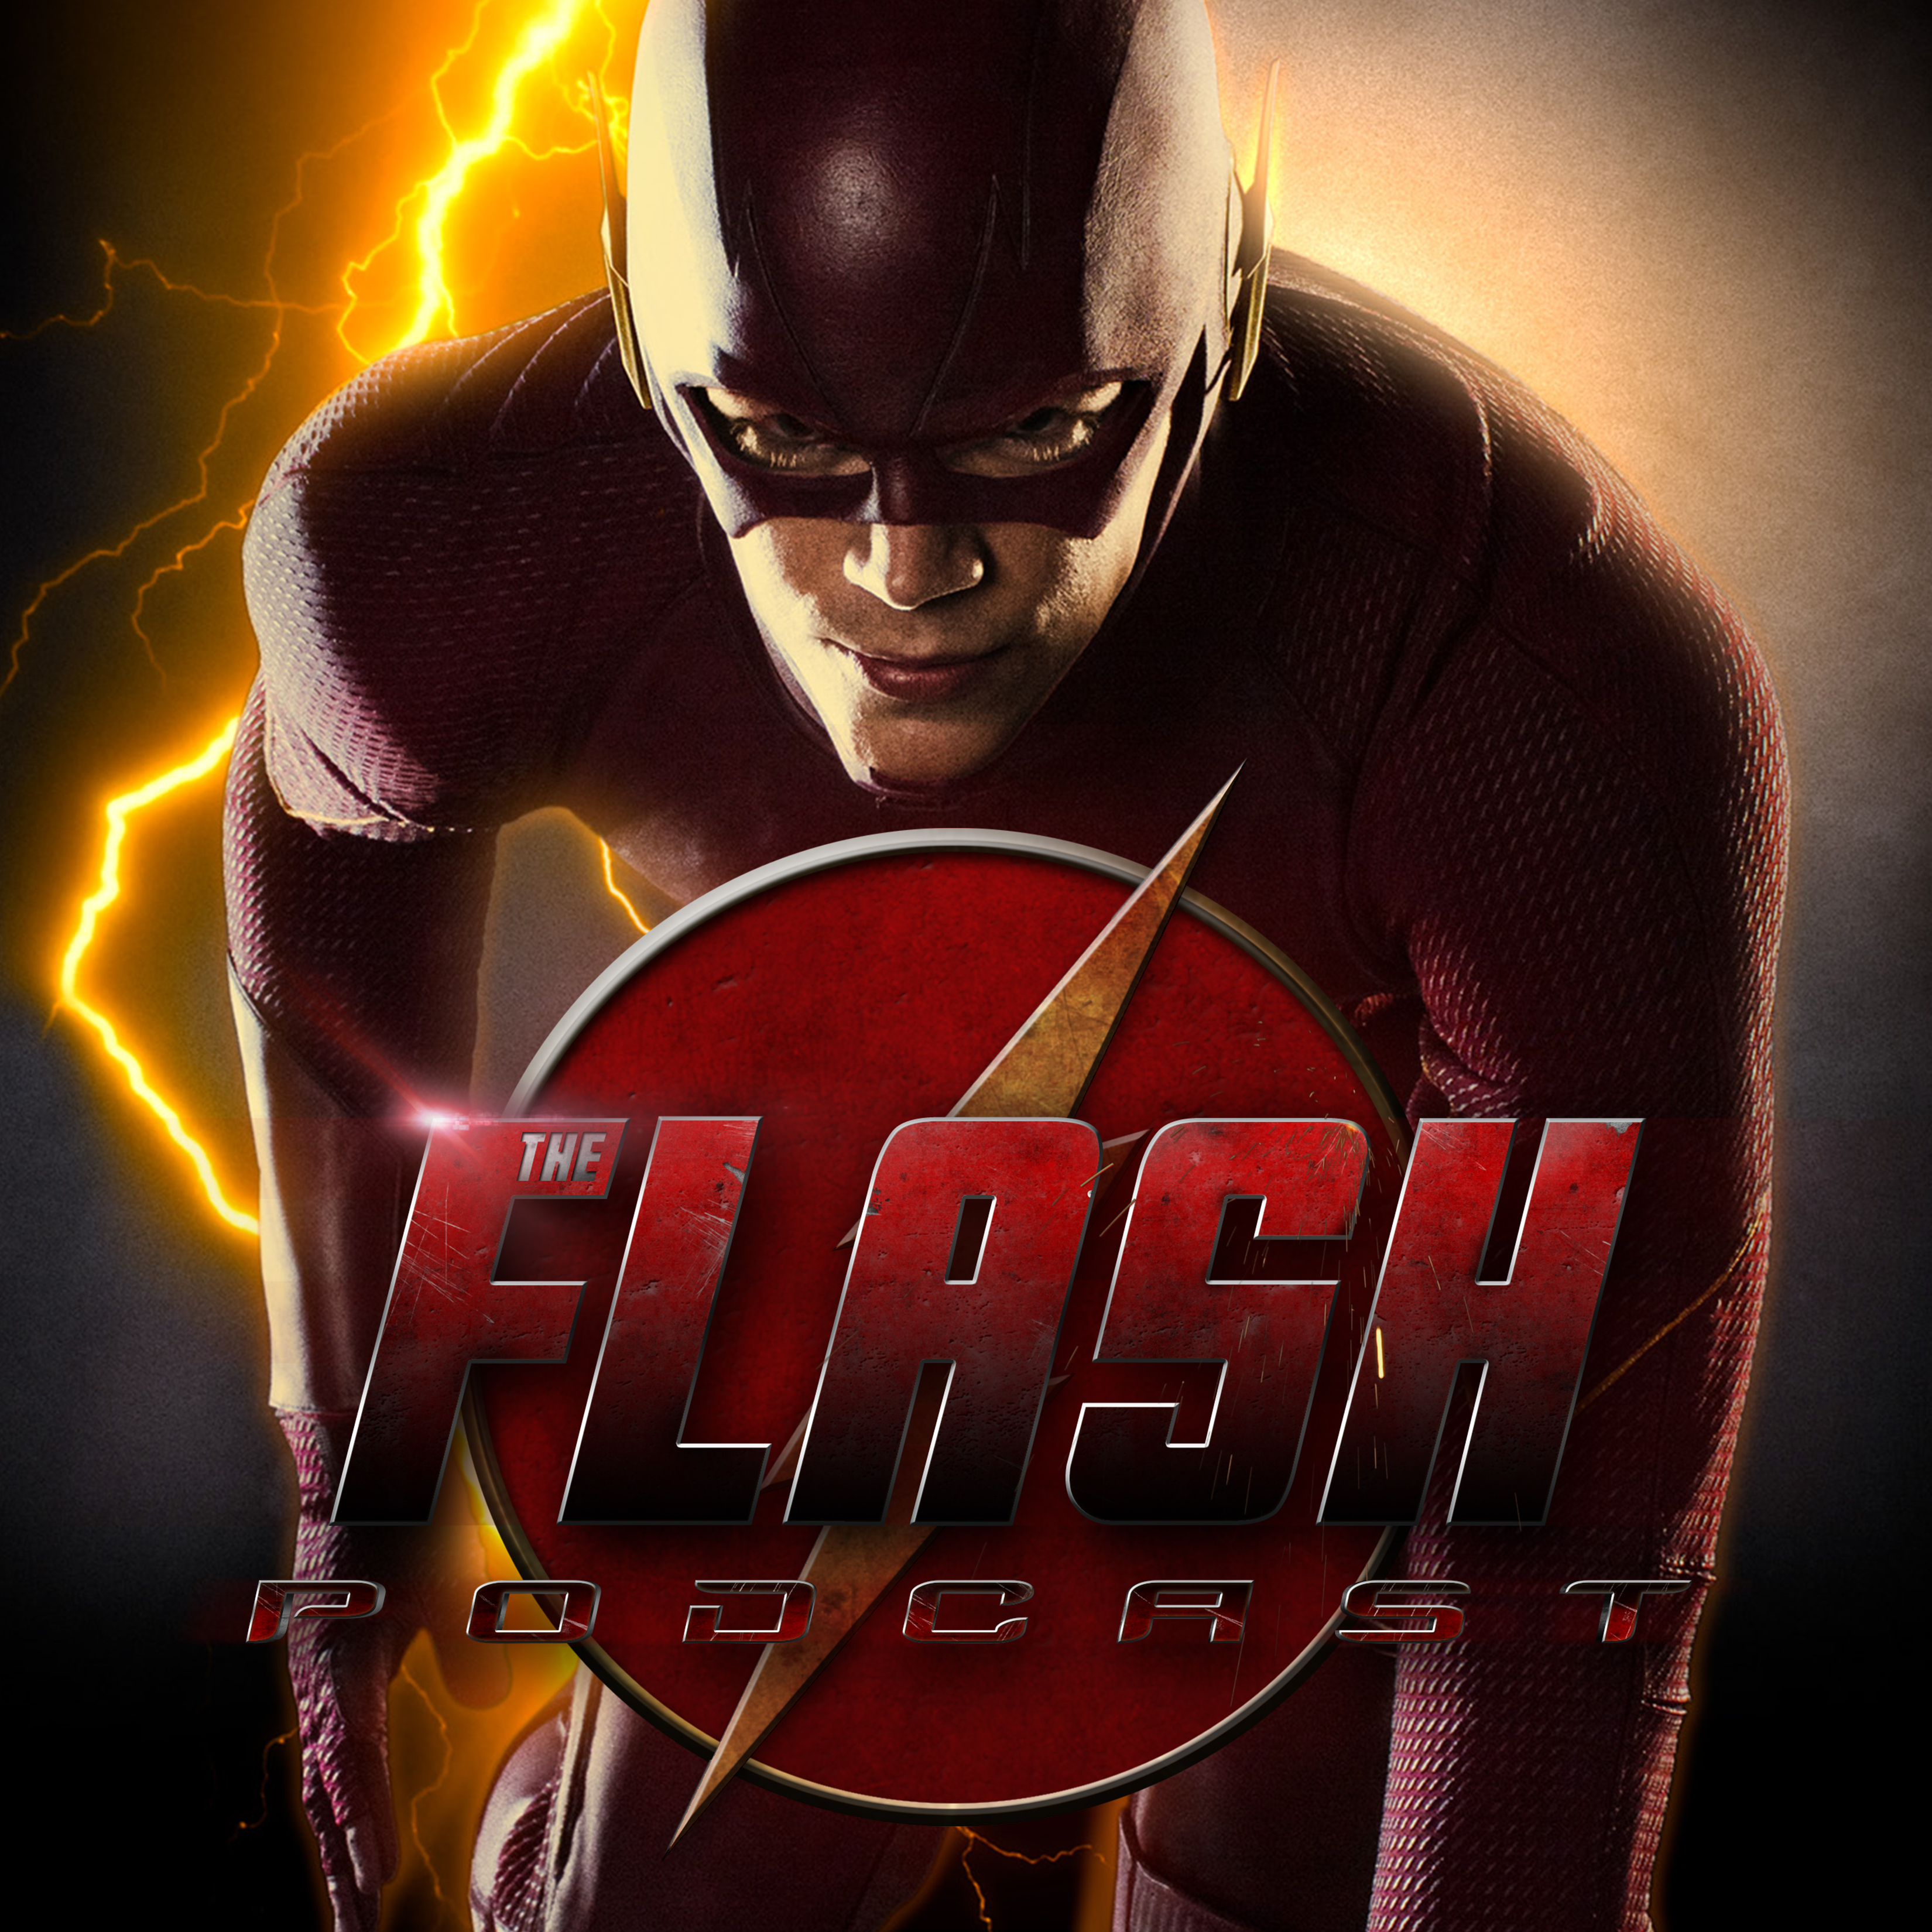 The Flash Podcast 030 - Co-Host Introduction: Laura Keeney